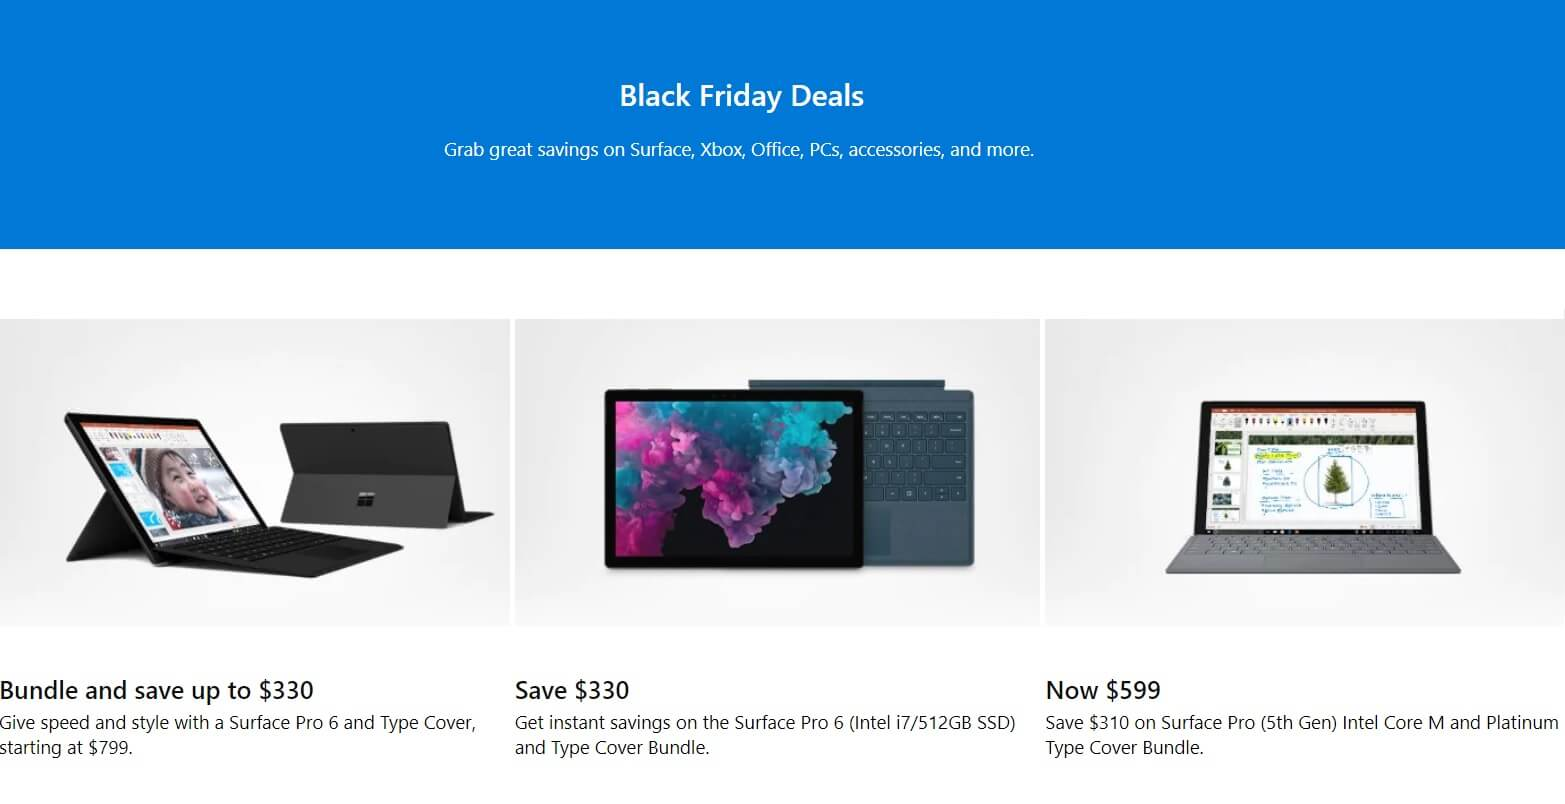 microsoft black friday deals save 330 on surface pro 6 300 on